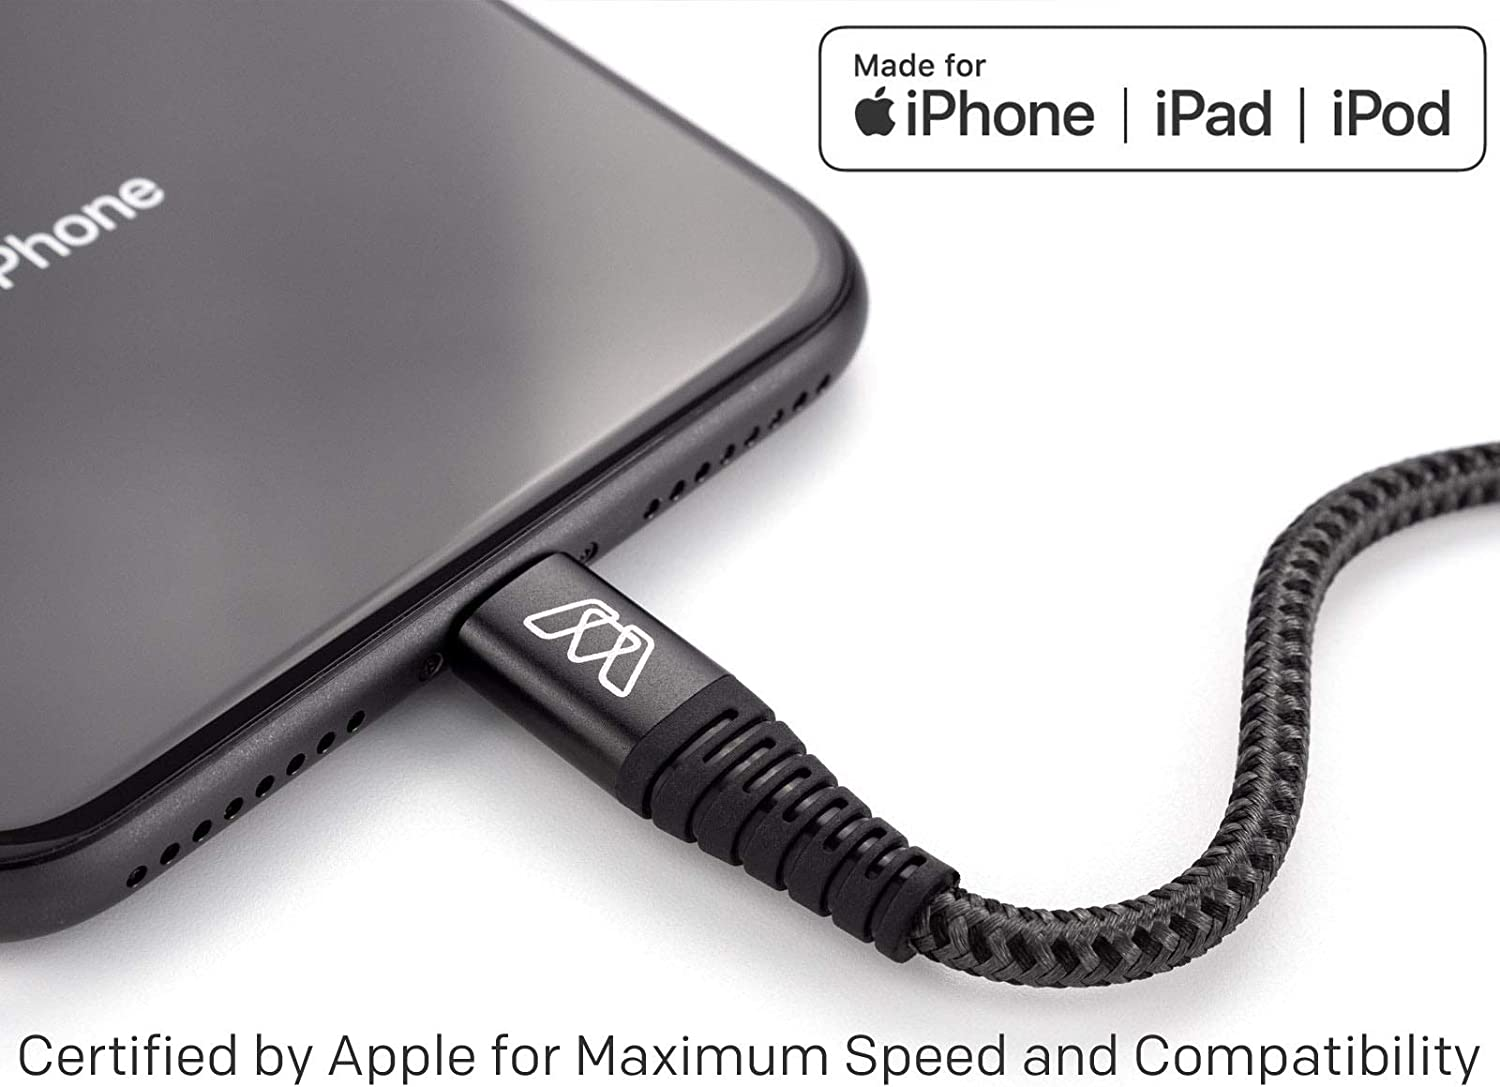 8 Max XS MOS Strike USB-C to Lightning Fast Charge Cable for iPhone 3 ft.- Supports USB-C Power Delivery iPhone 11 X 11 Pro